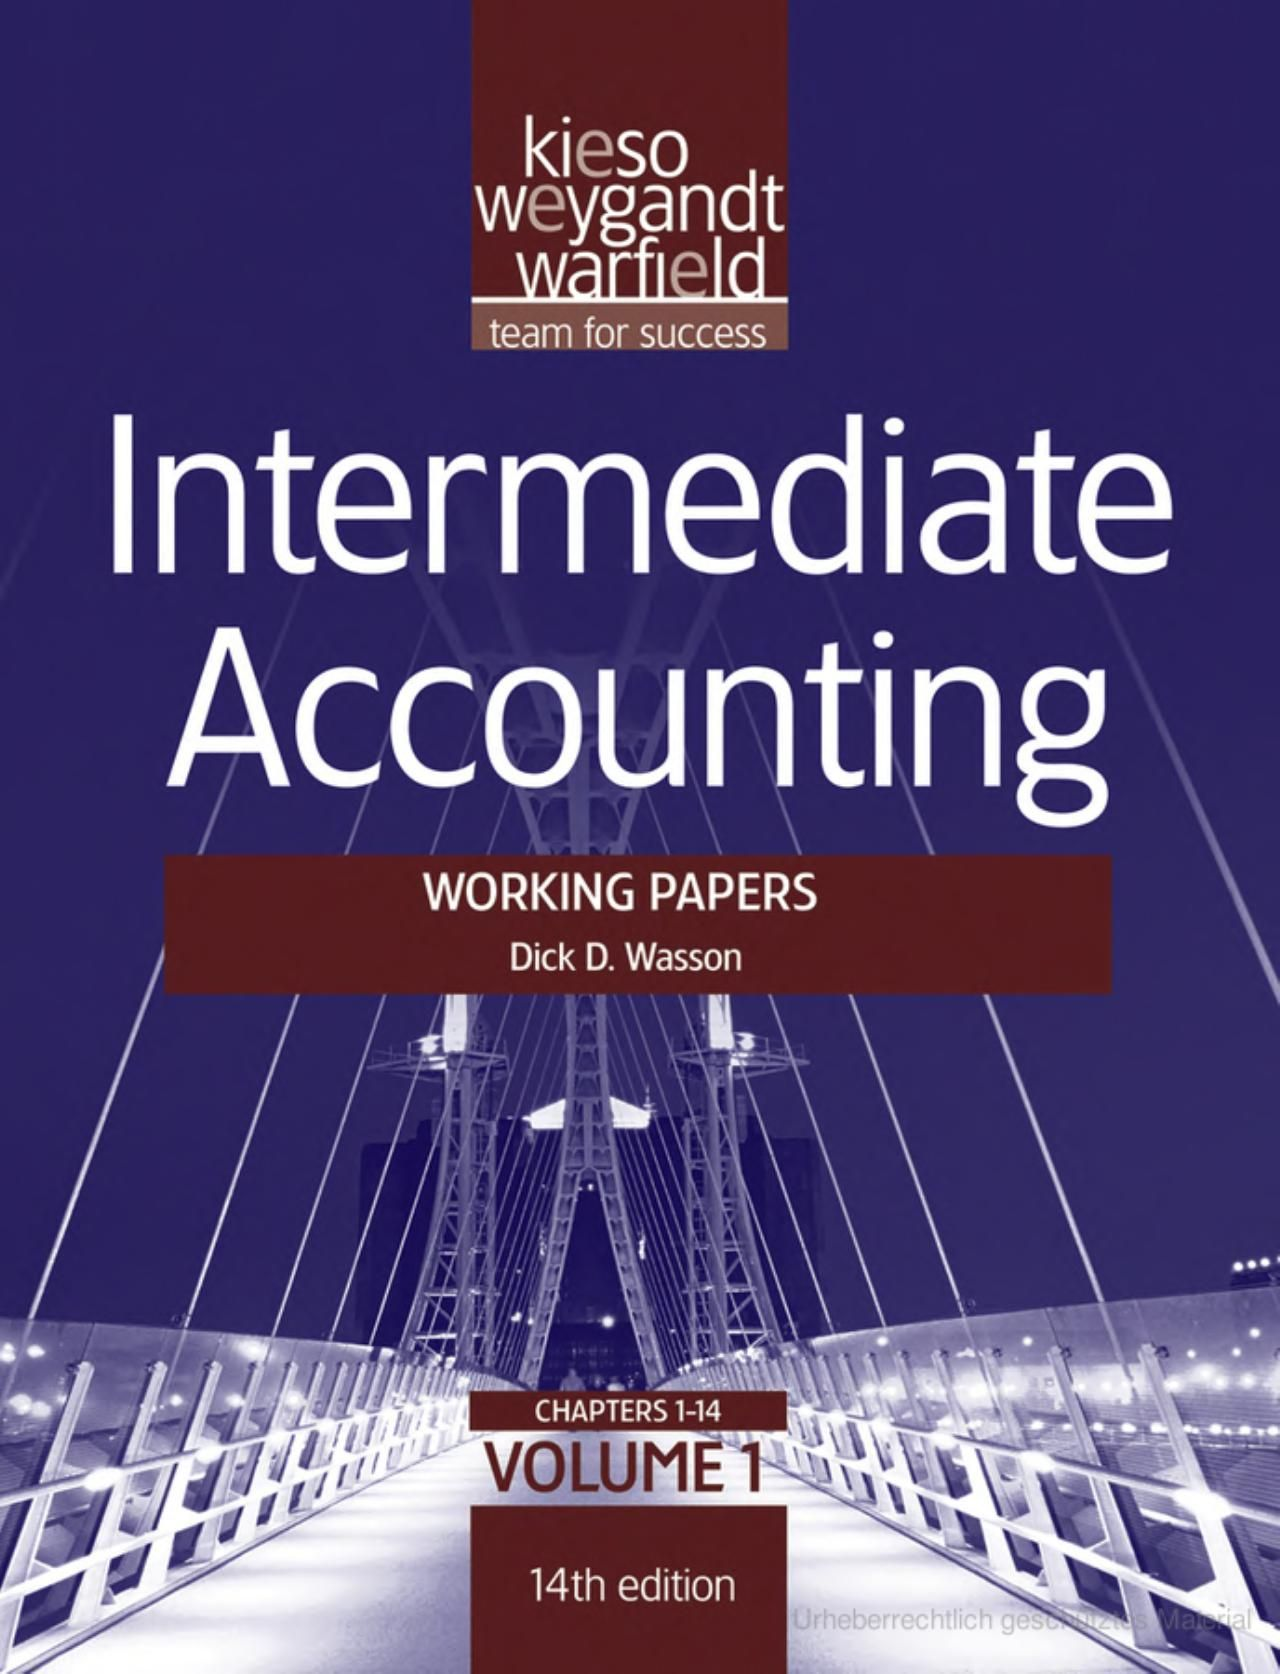 intermediate accounting help Intermediate accounting delves into the more complex, more challenging aspects of accounting practices it covers topics and accounting situations that go beyond the basics, including the following.